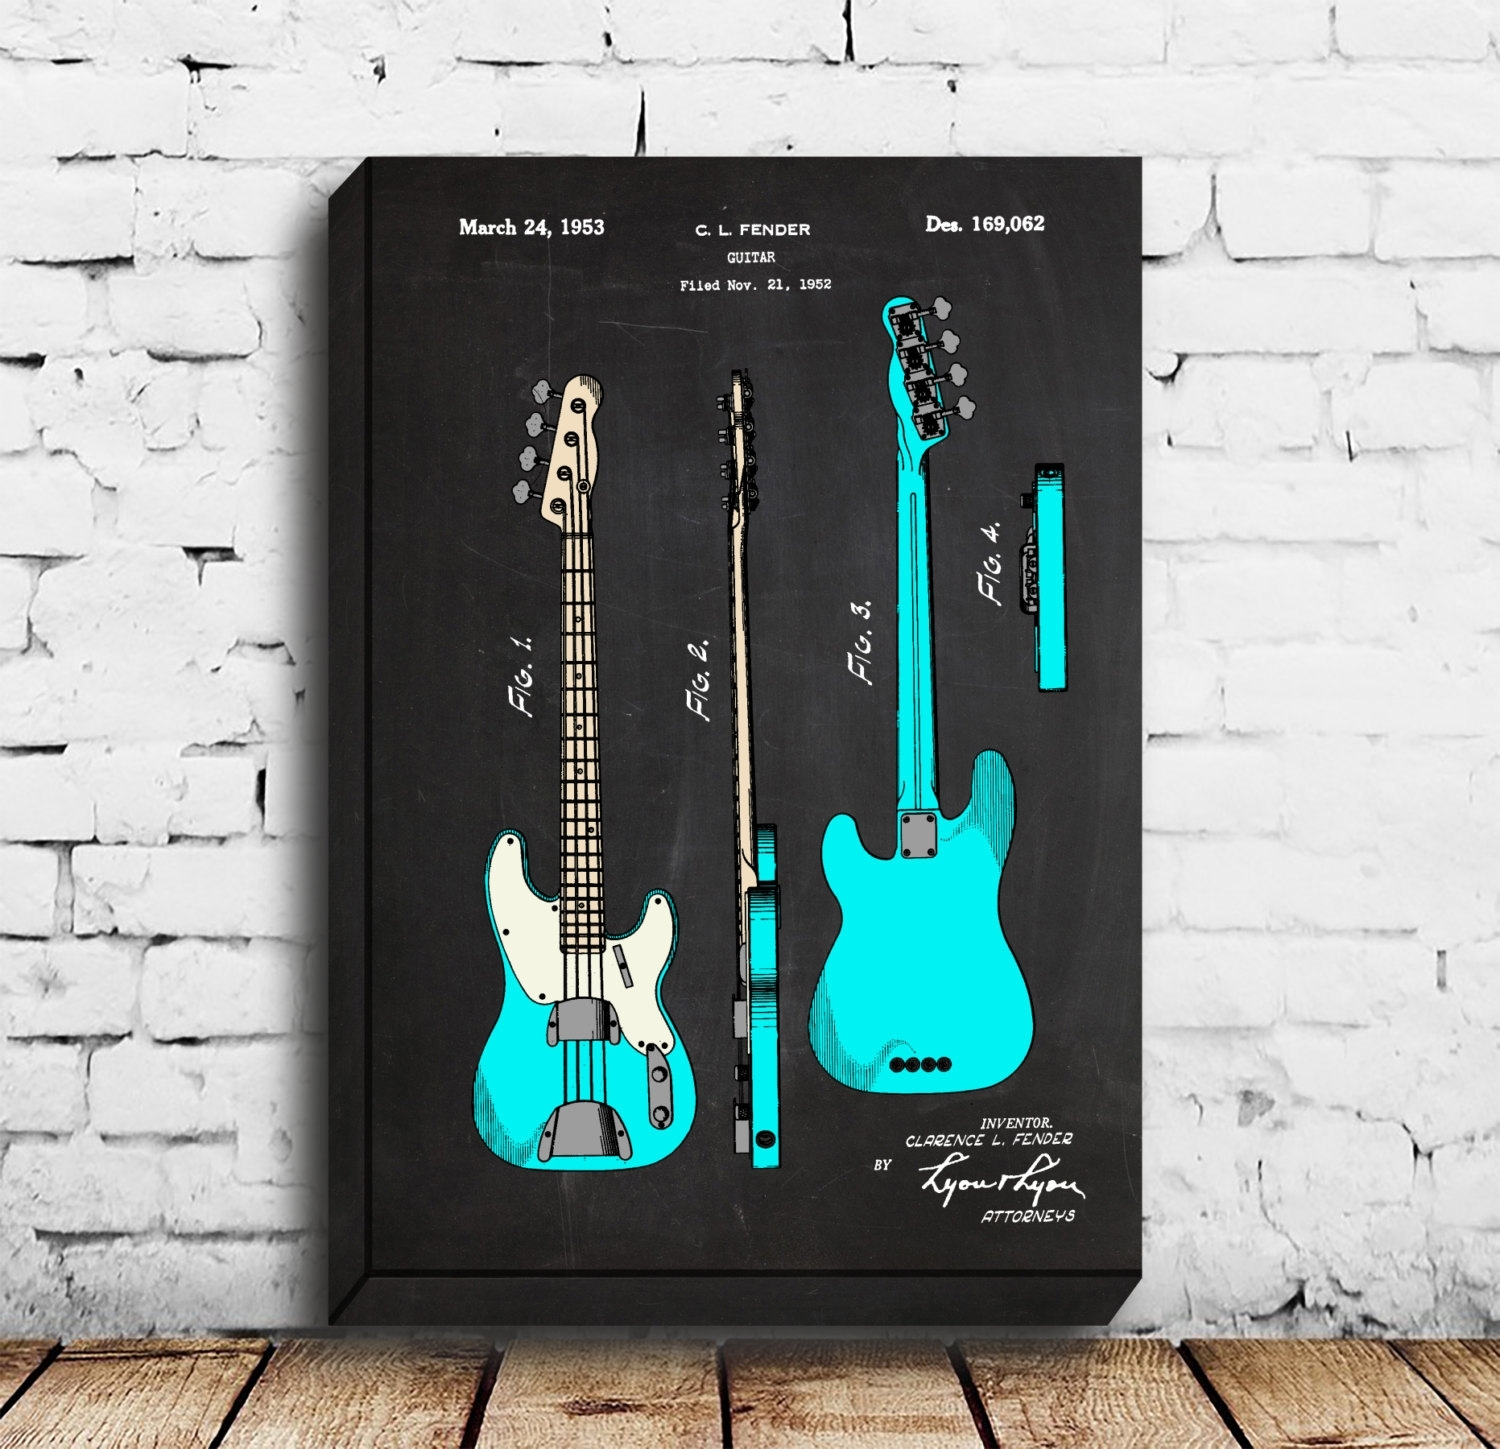 Canvas – Bass Guitar, Fender Bass Guitar Poster,fender Bass Guitar Pertaining To Current Bass Framed Art Prints (View 4 of 15)